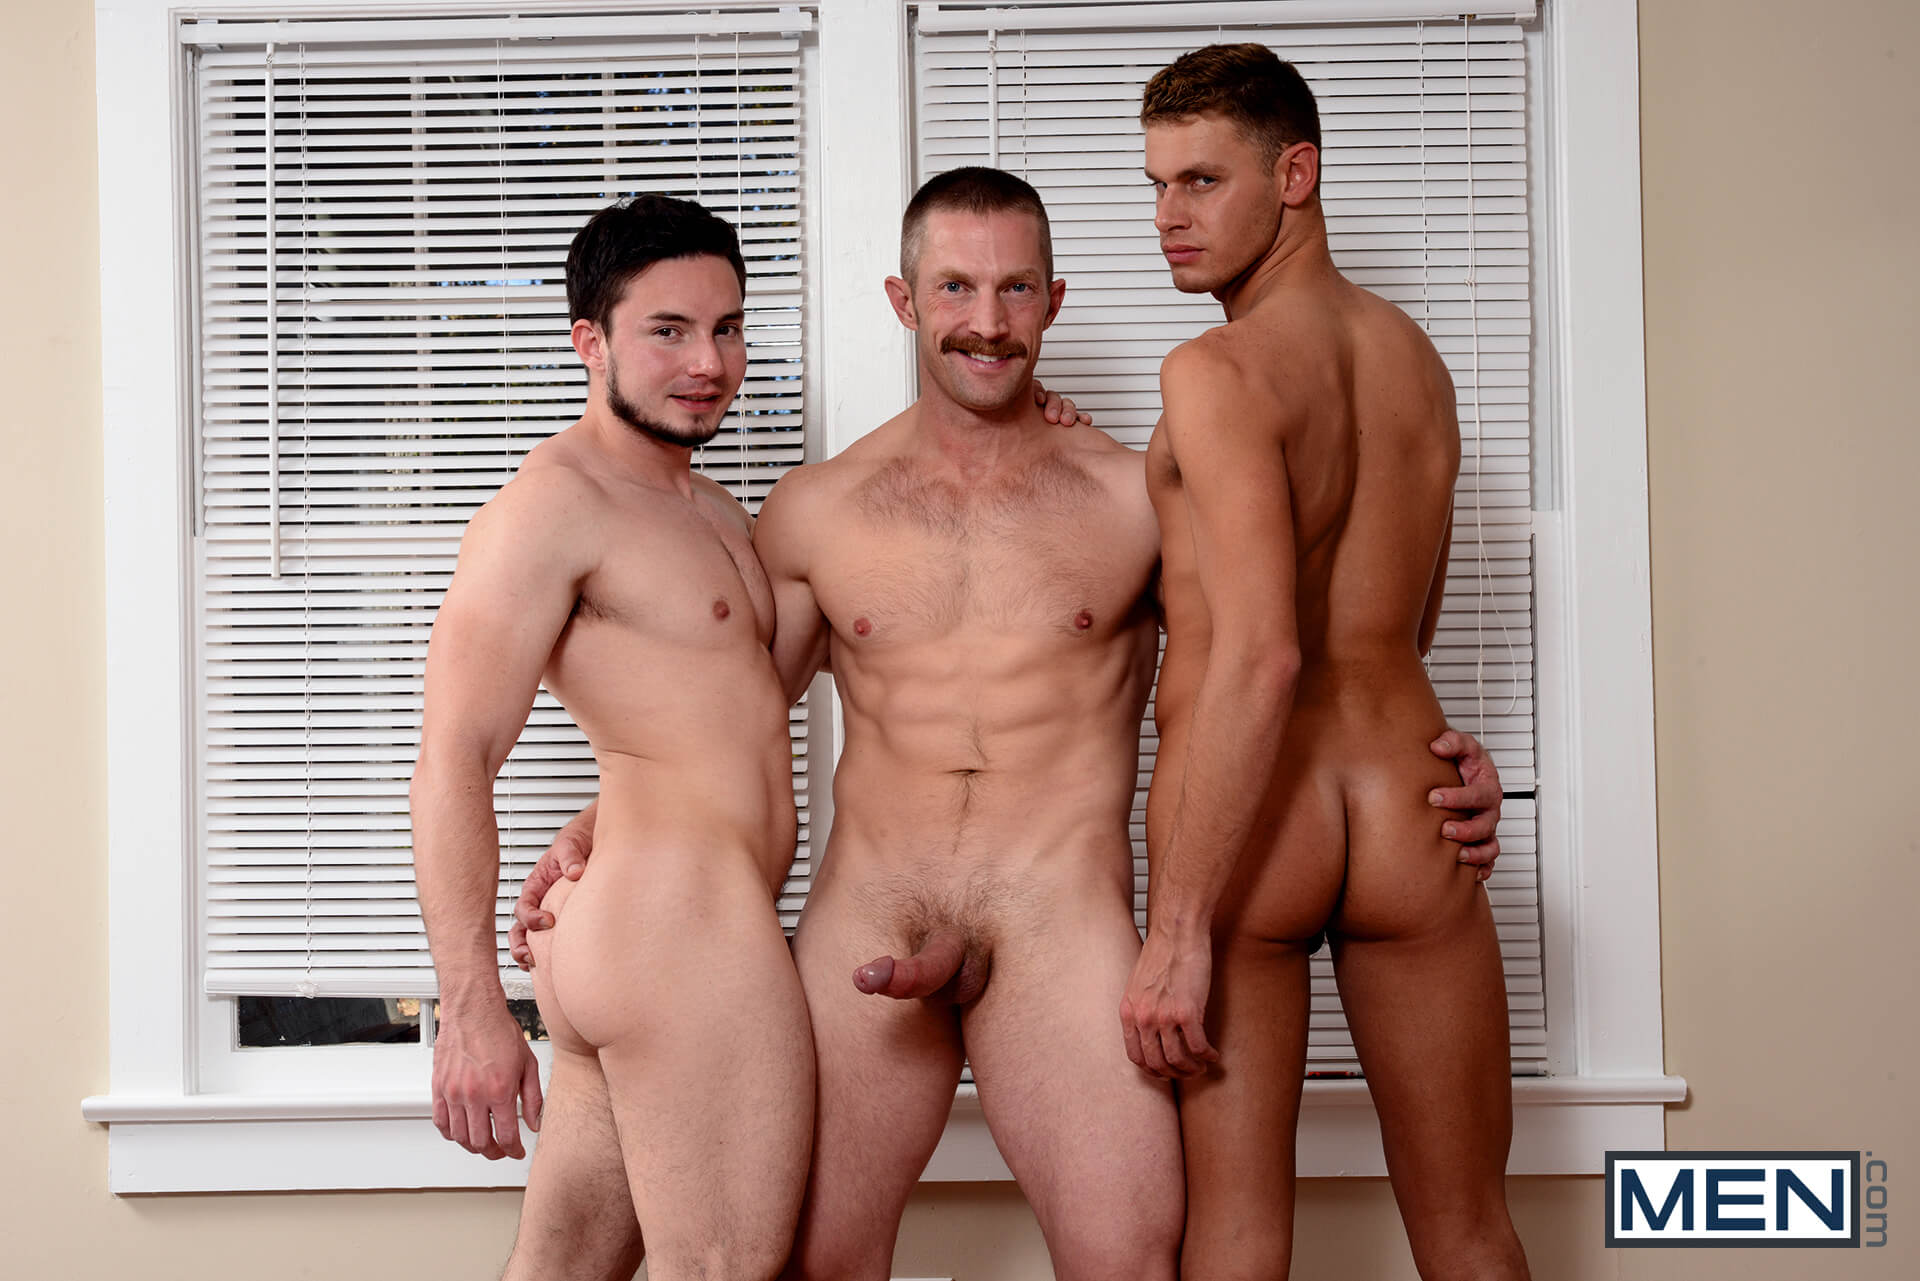 men drill my hole daddys hos adam herst andres moreno luke alexander gay porn blog image 6